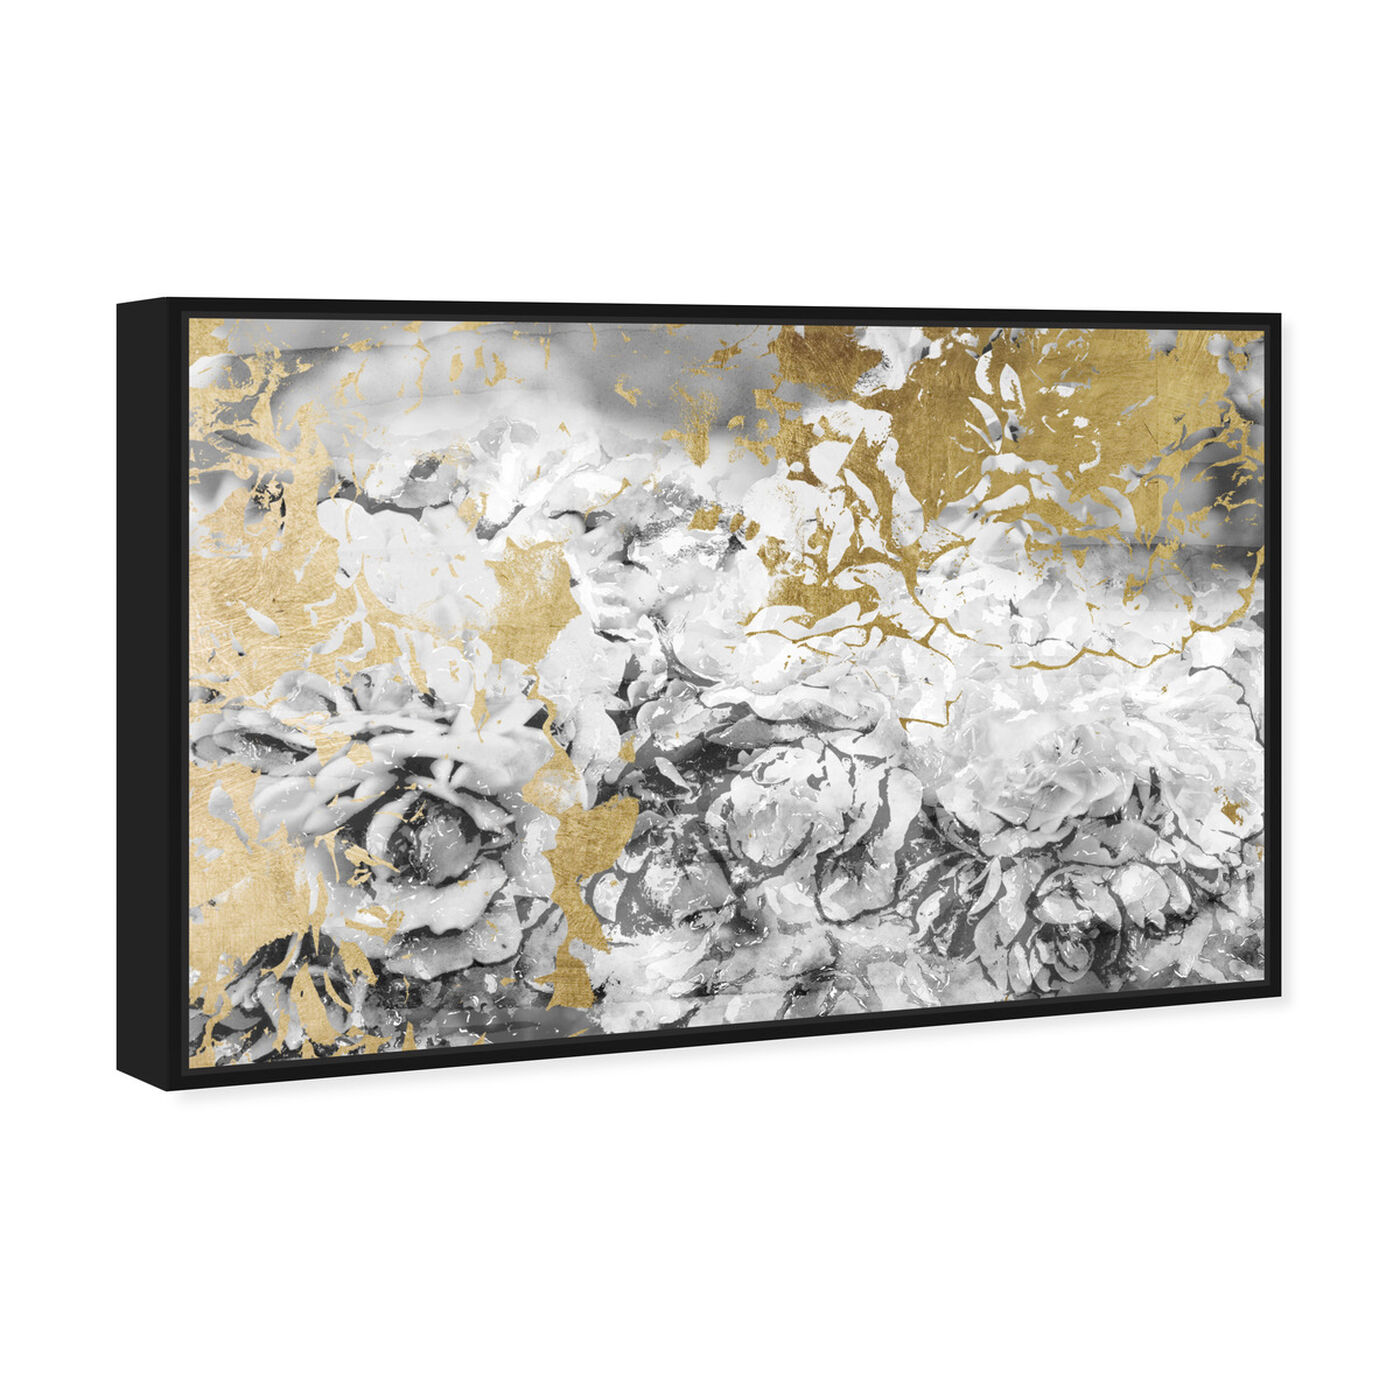 Angled view of Silver and Gold Camellias featuring abstract and flowers art.